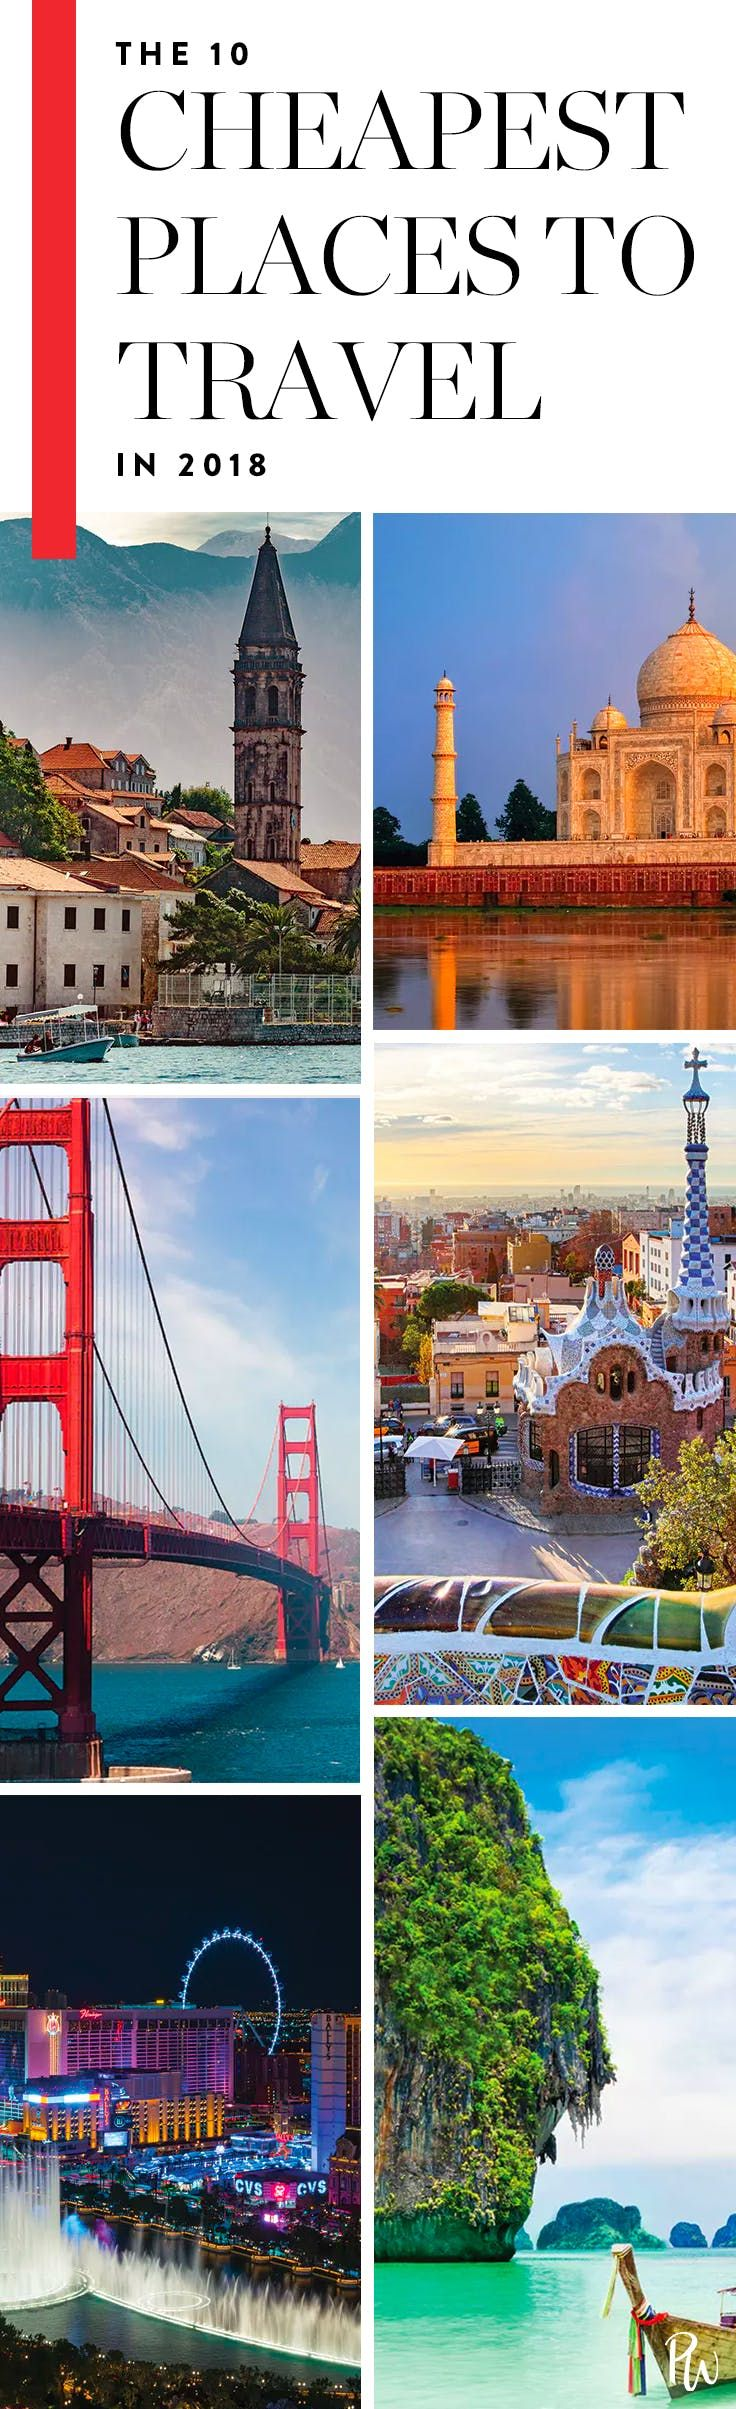 The 10 Cheapest Places to Travel in 2018—You'll Be Surprised #purewow #vacation #scrimp #international #vacation inspiration #travel #airline travel #domestic